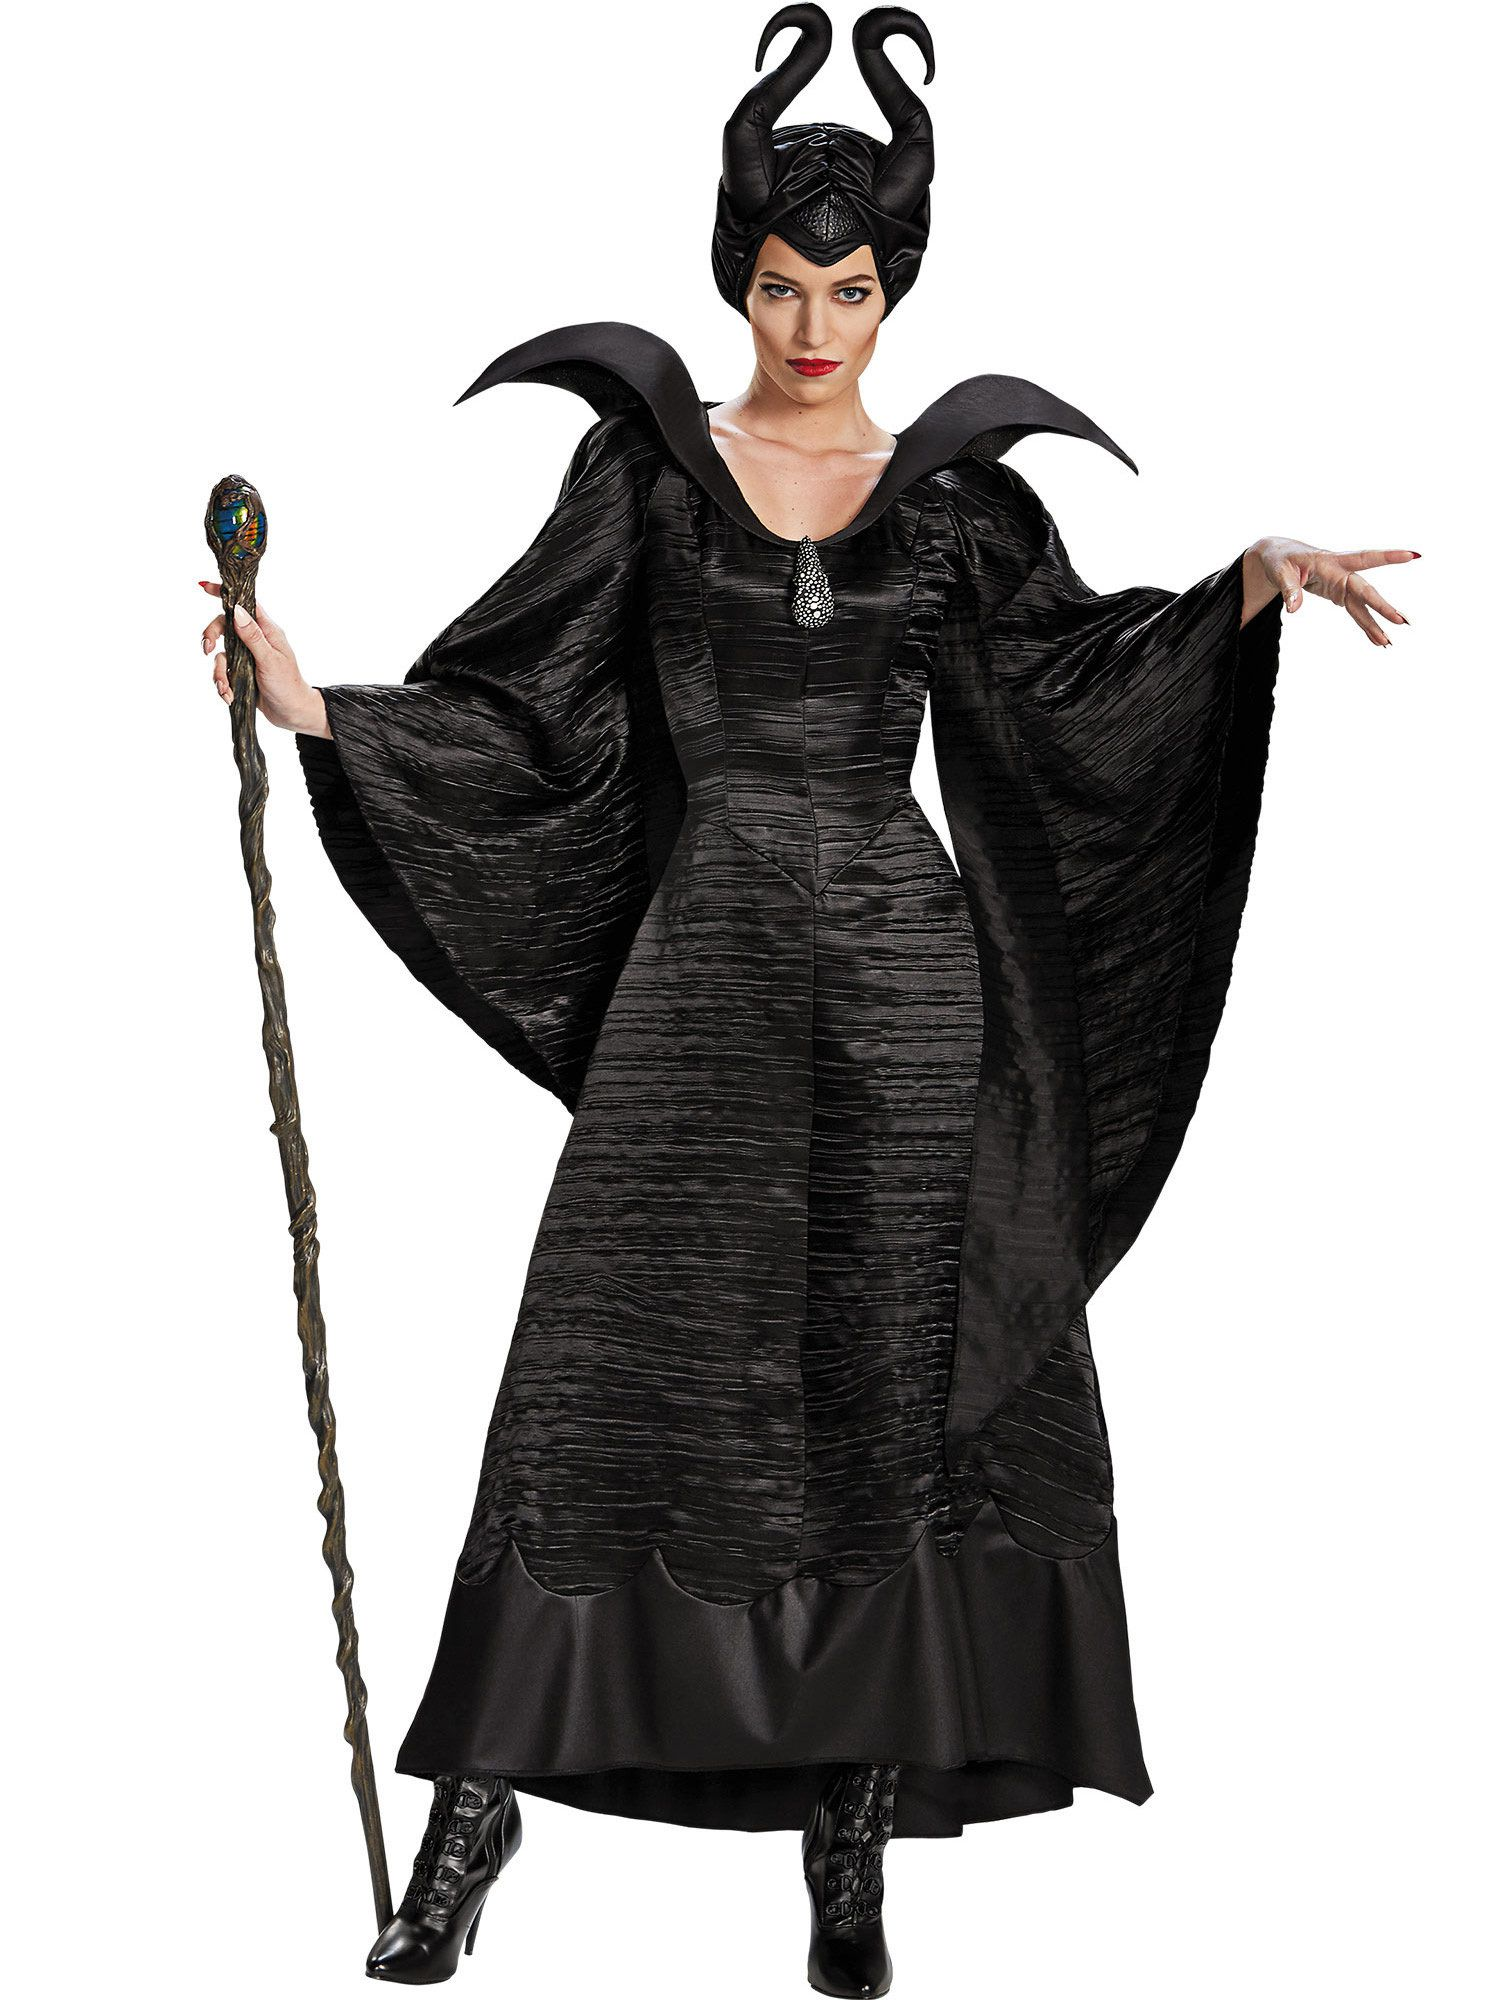 Maleficent Christening Black Gown Deluxe Costume Adult